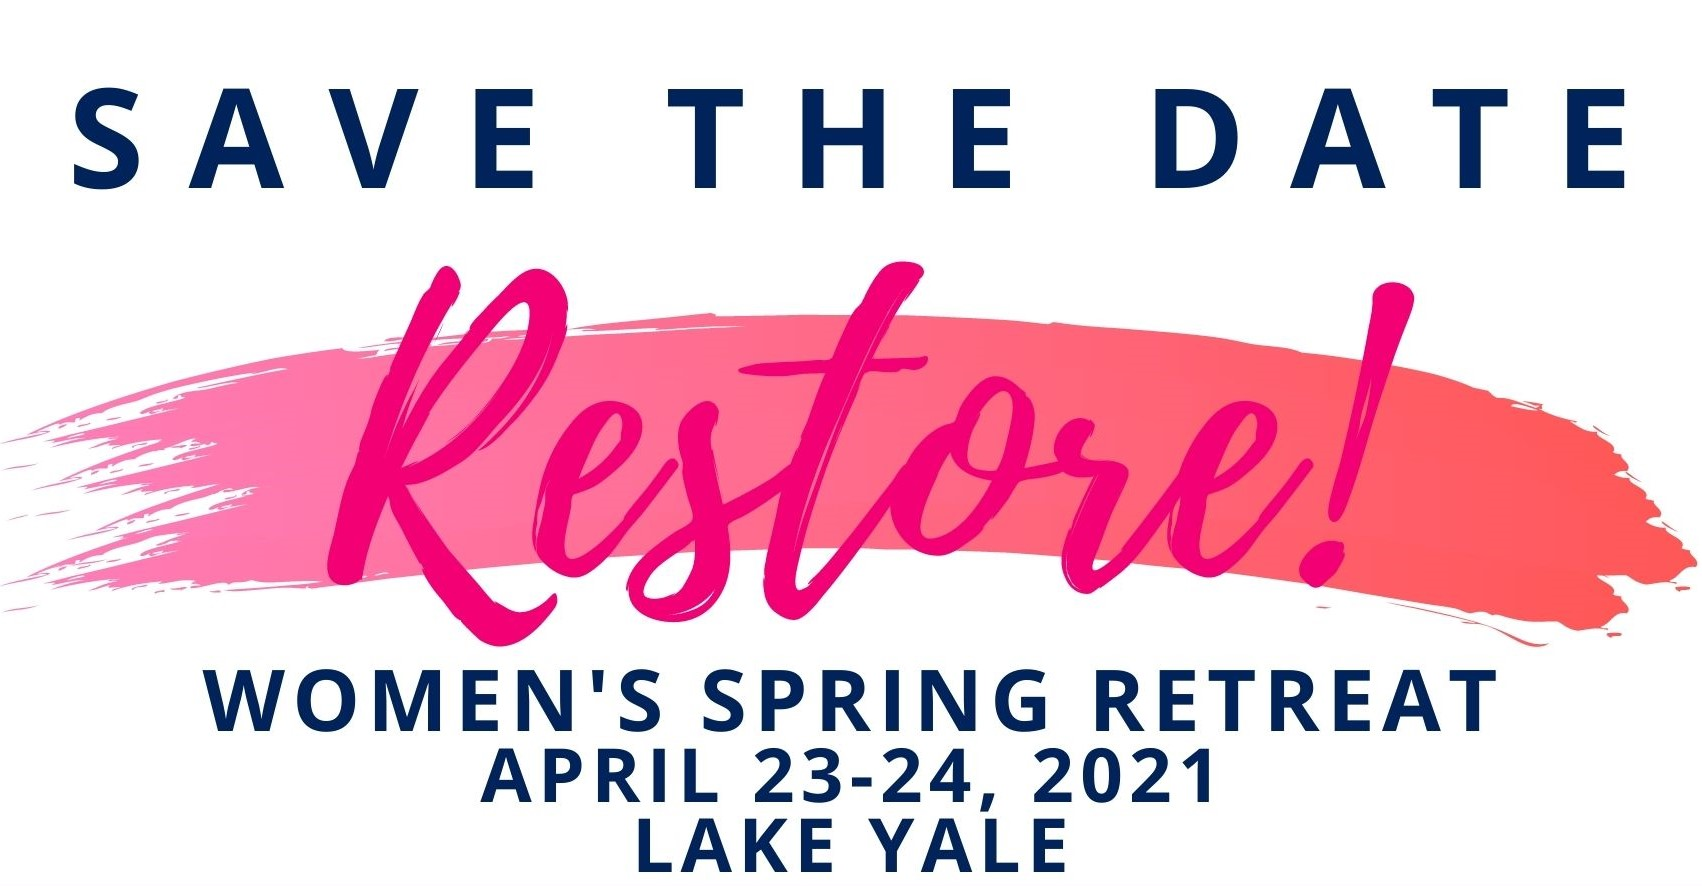 Women's Spring Retreat, Lake Yale Baptist Conference Center